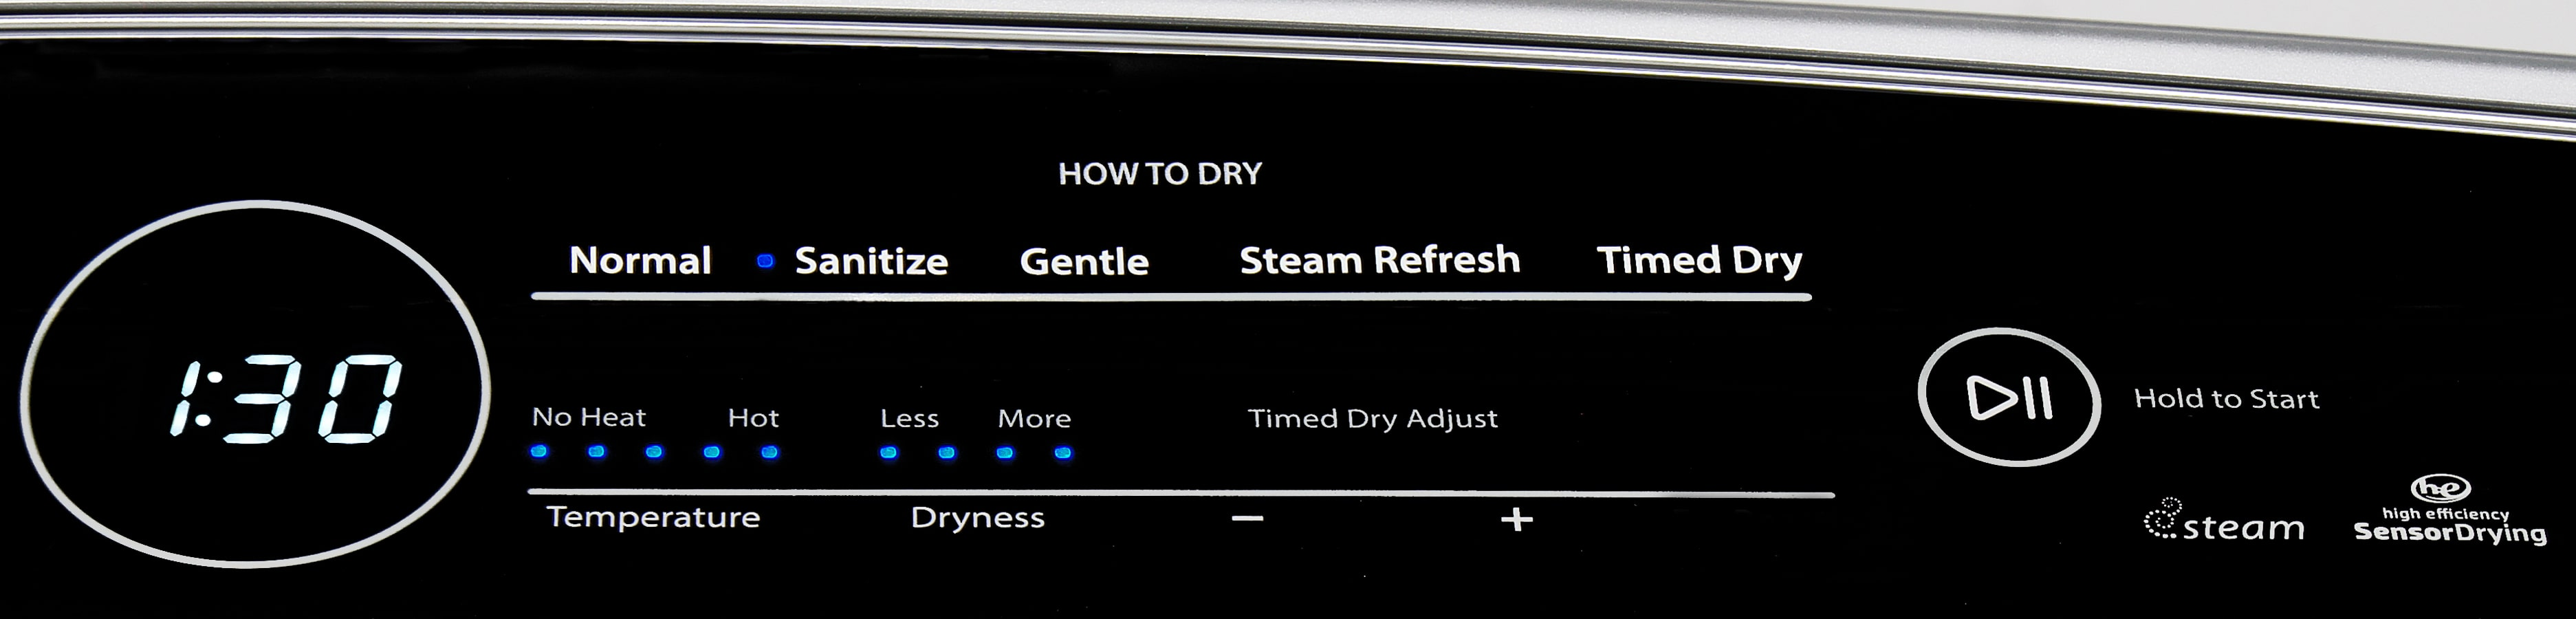 """The """"How To Dry"""" section of the Whirlpool Cabrio WED7300DW's controls tries to help you intuit what heat level you should be using to dry your clothes."""